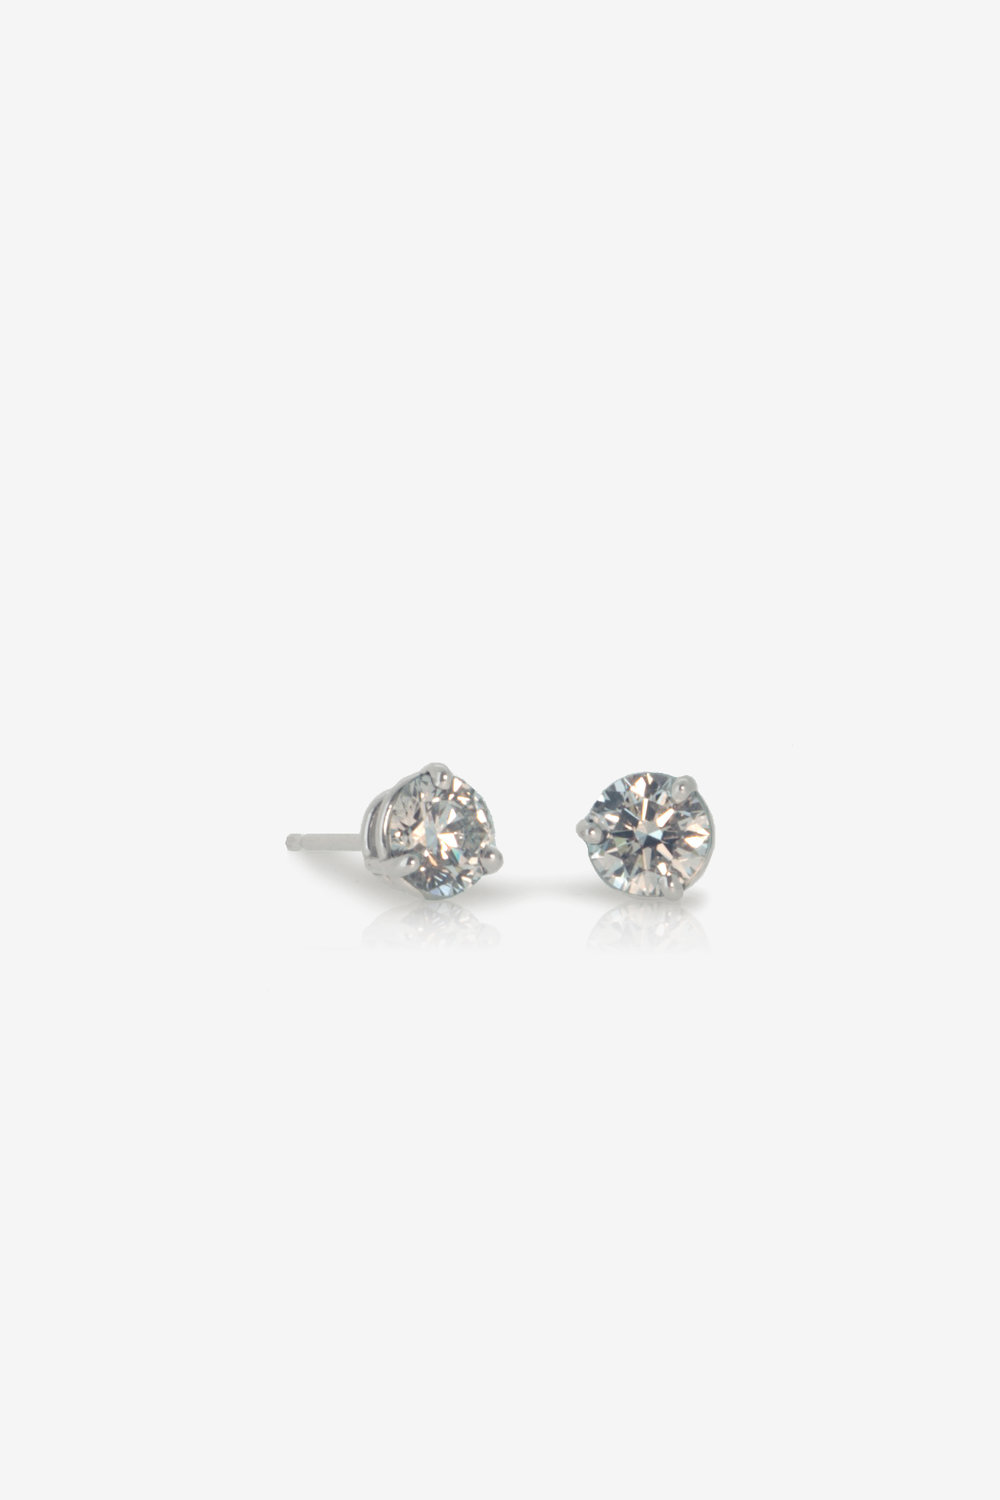 1.10ct Canada Mark GIA diamond earrings